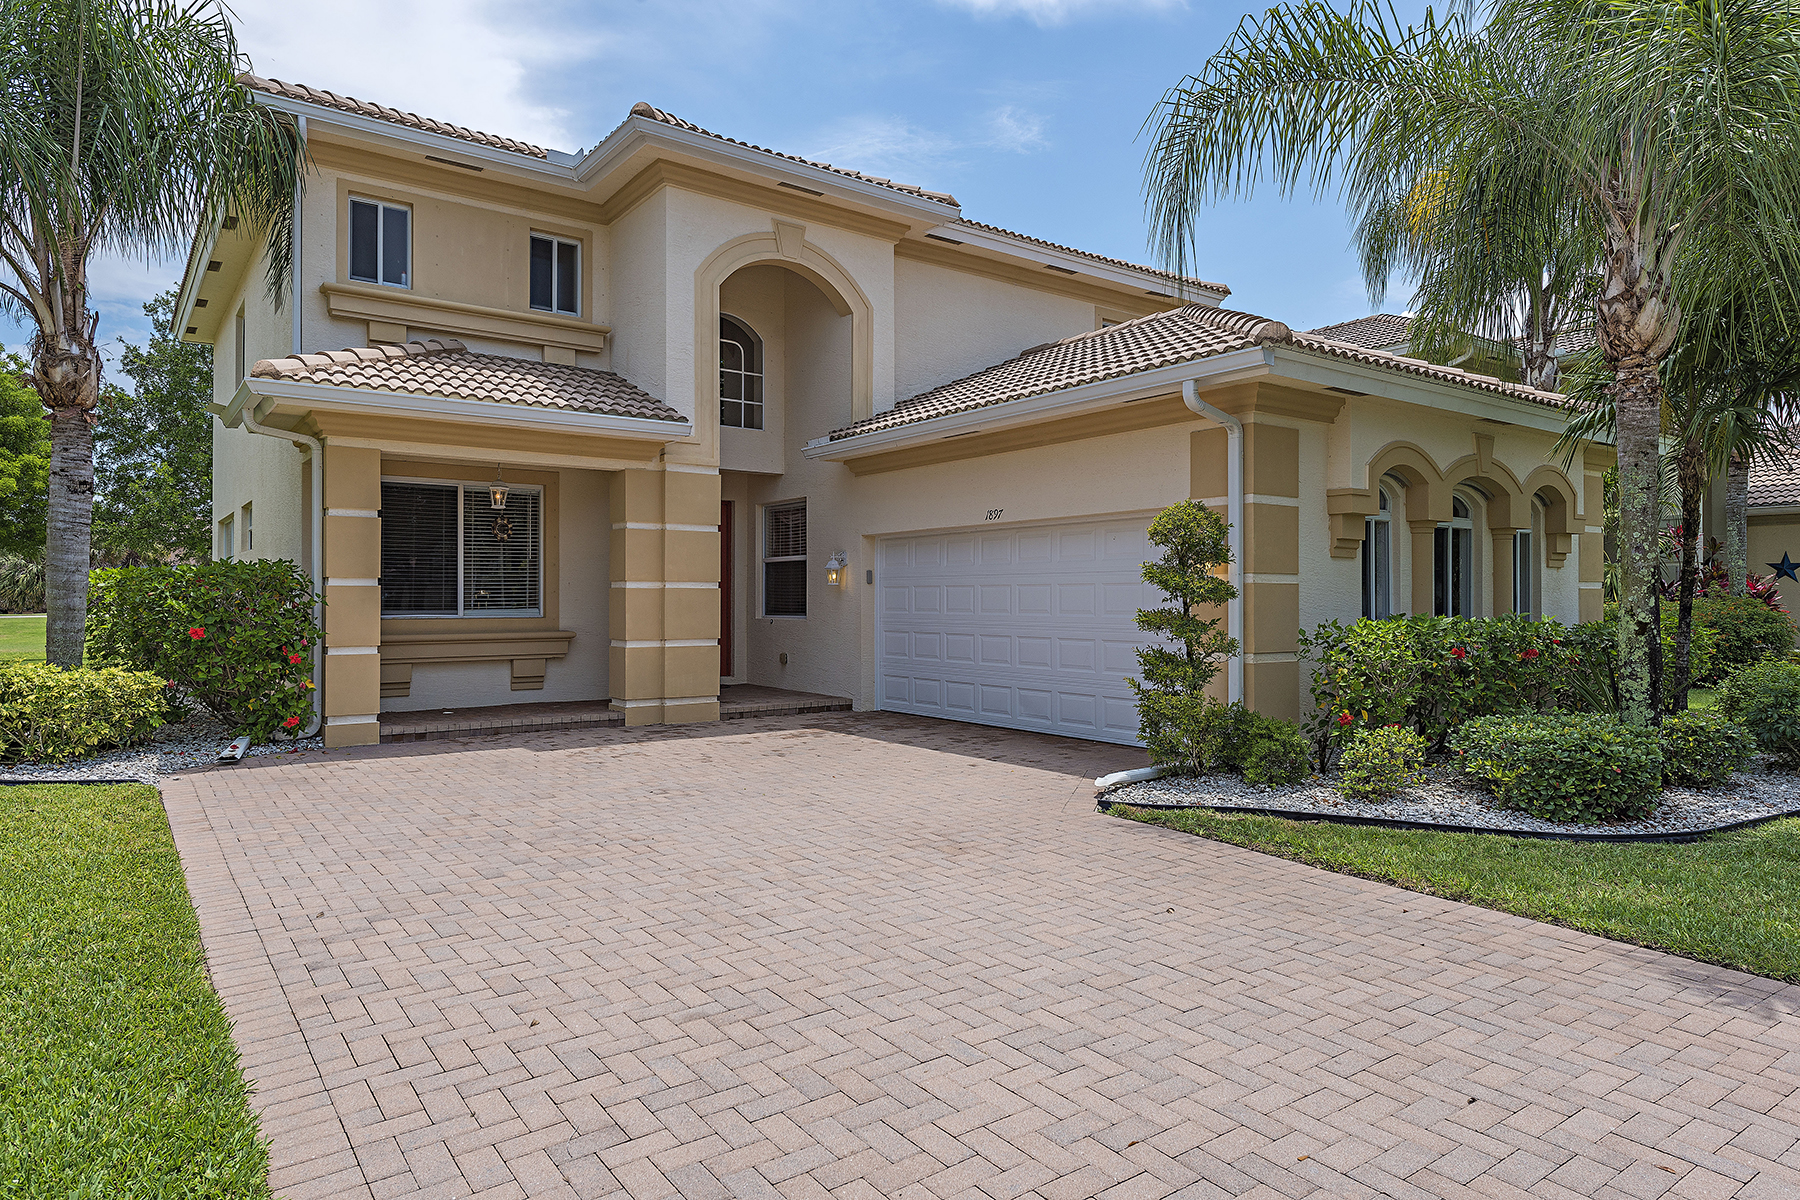 Single Family Home for Sale at VALENCIA LAKES - VALENCIA COUNTRY CLUB 1897 Par Dr Naples, Florida, 34120 United States